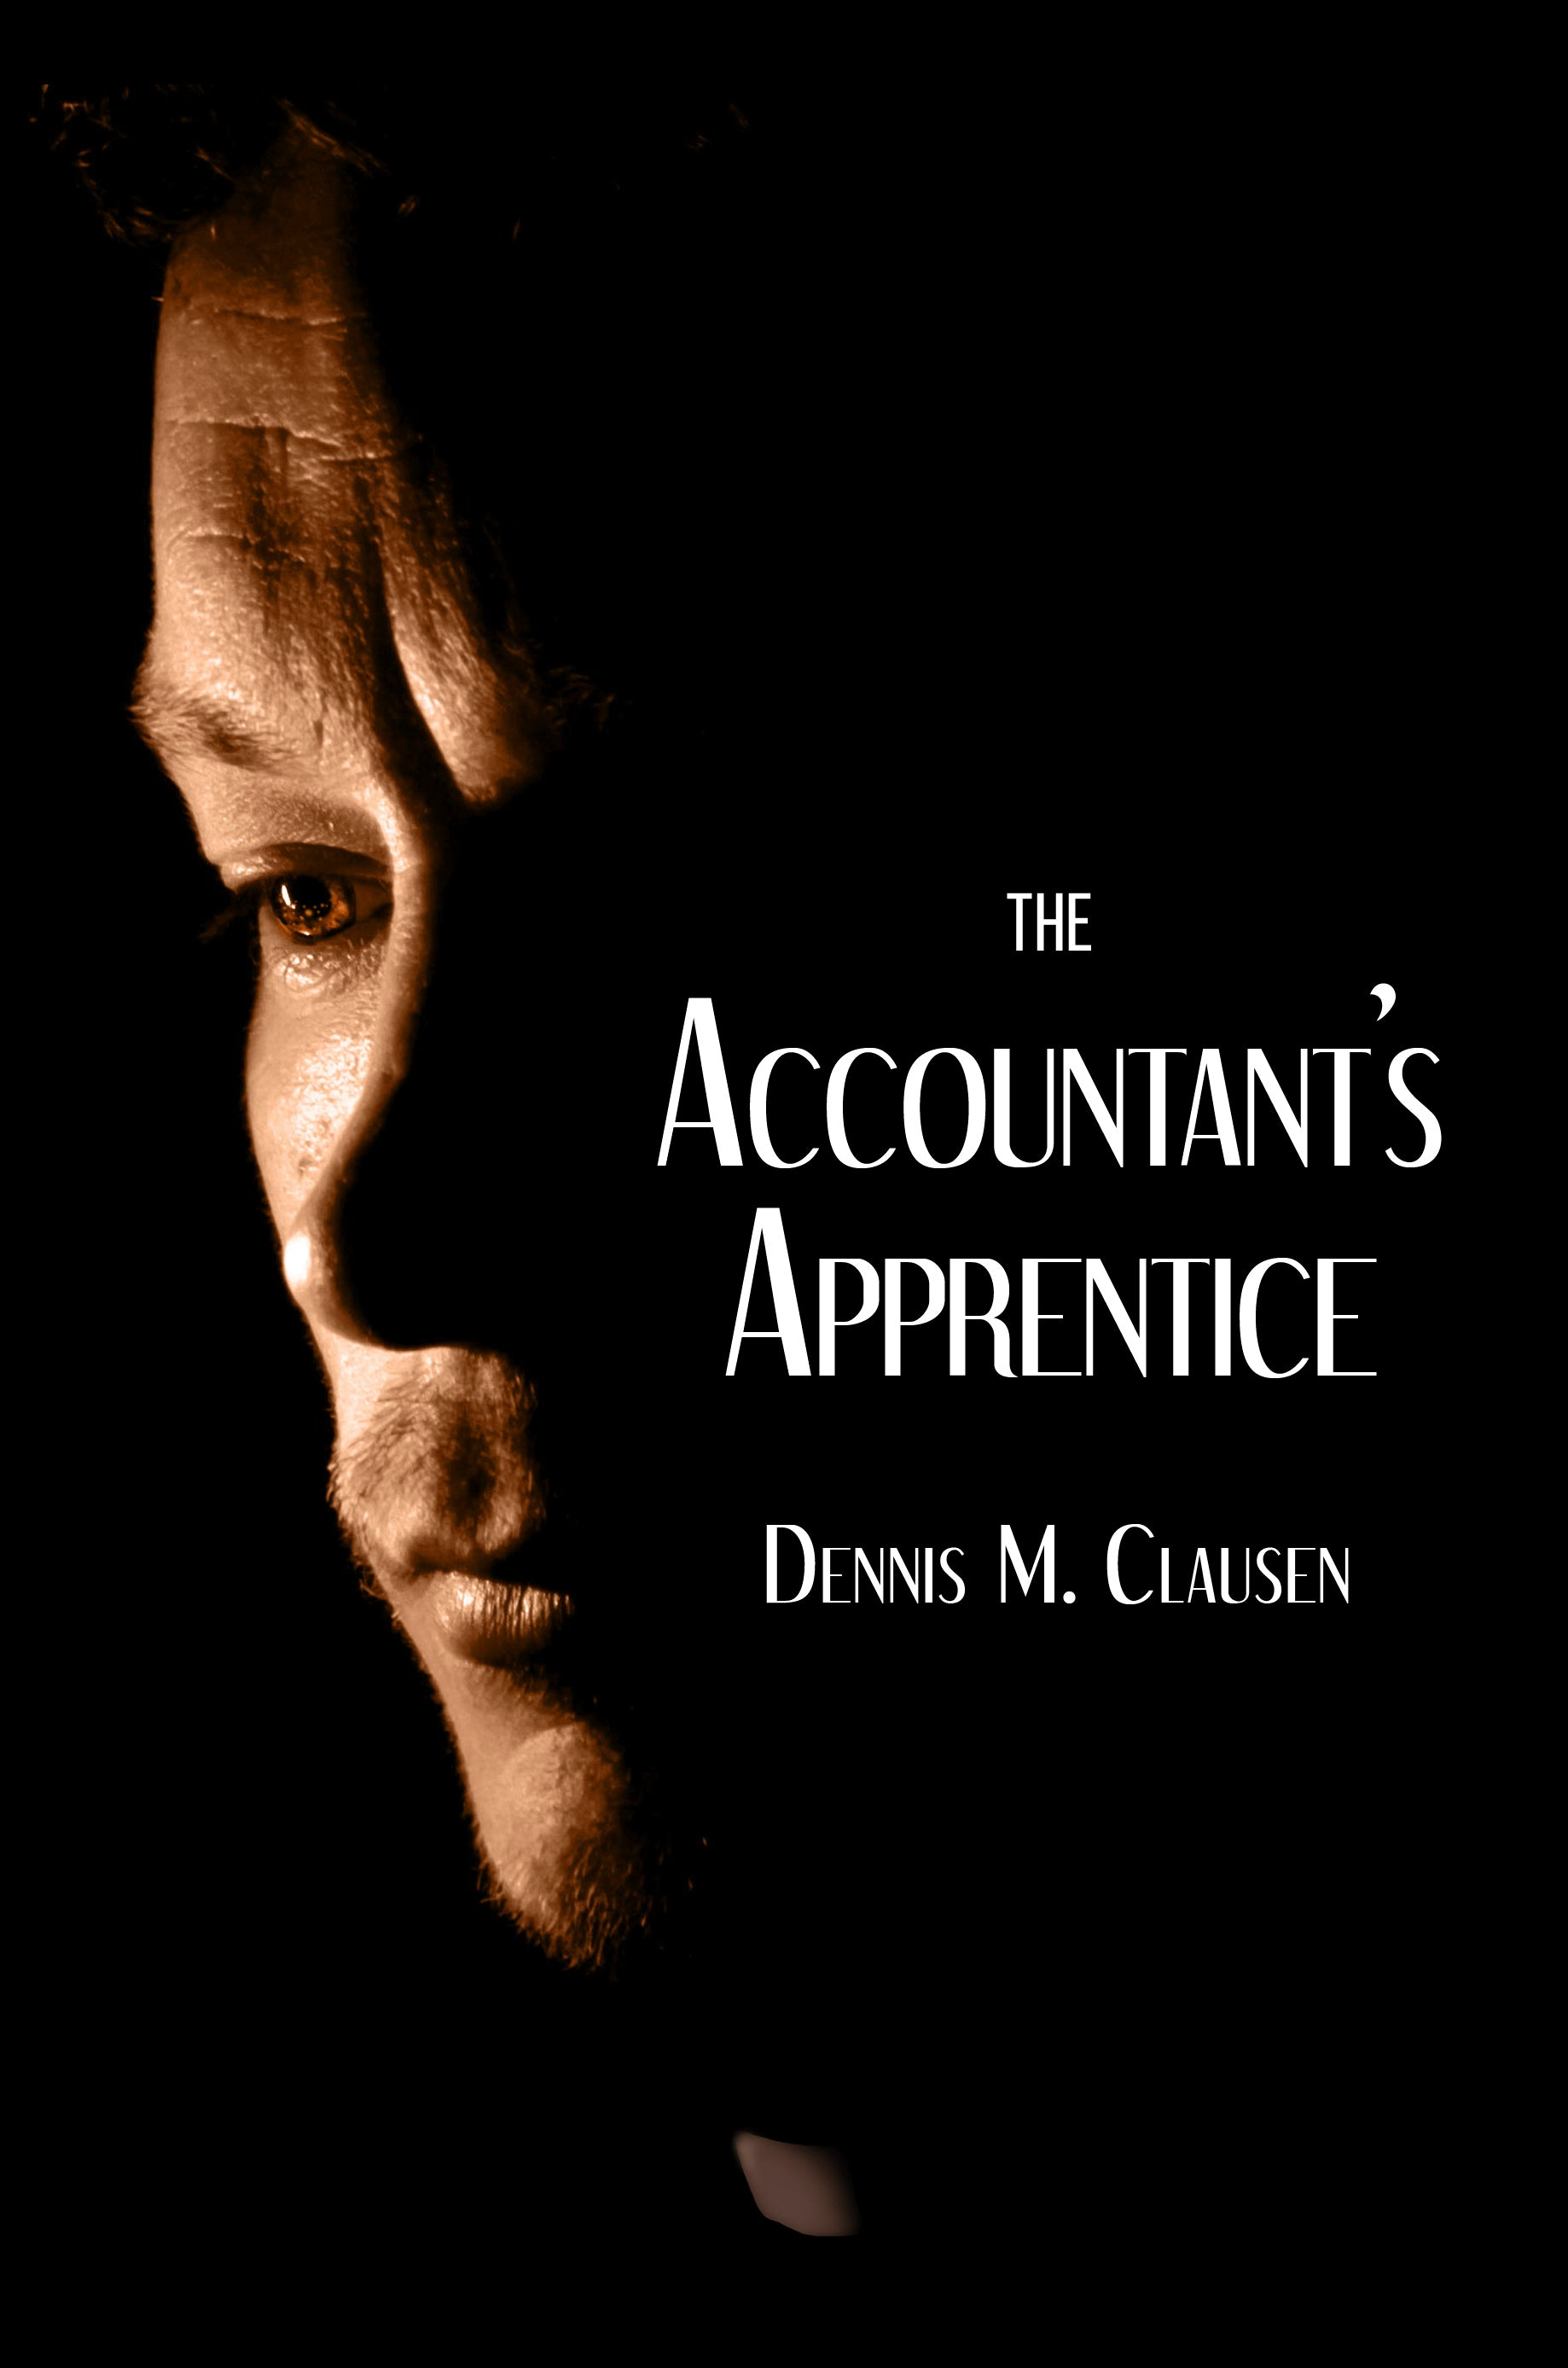 """The Accountant's Apprentice"" by Dennis Clausen wins the Sunny Award for Brown Posey Press Bestseller in 2018"